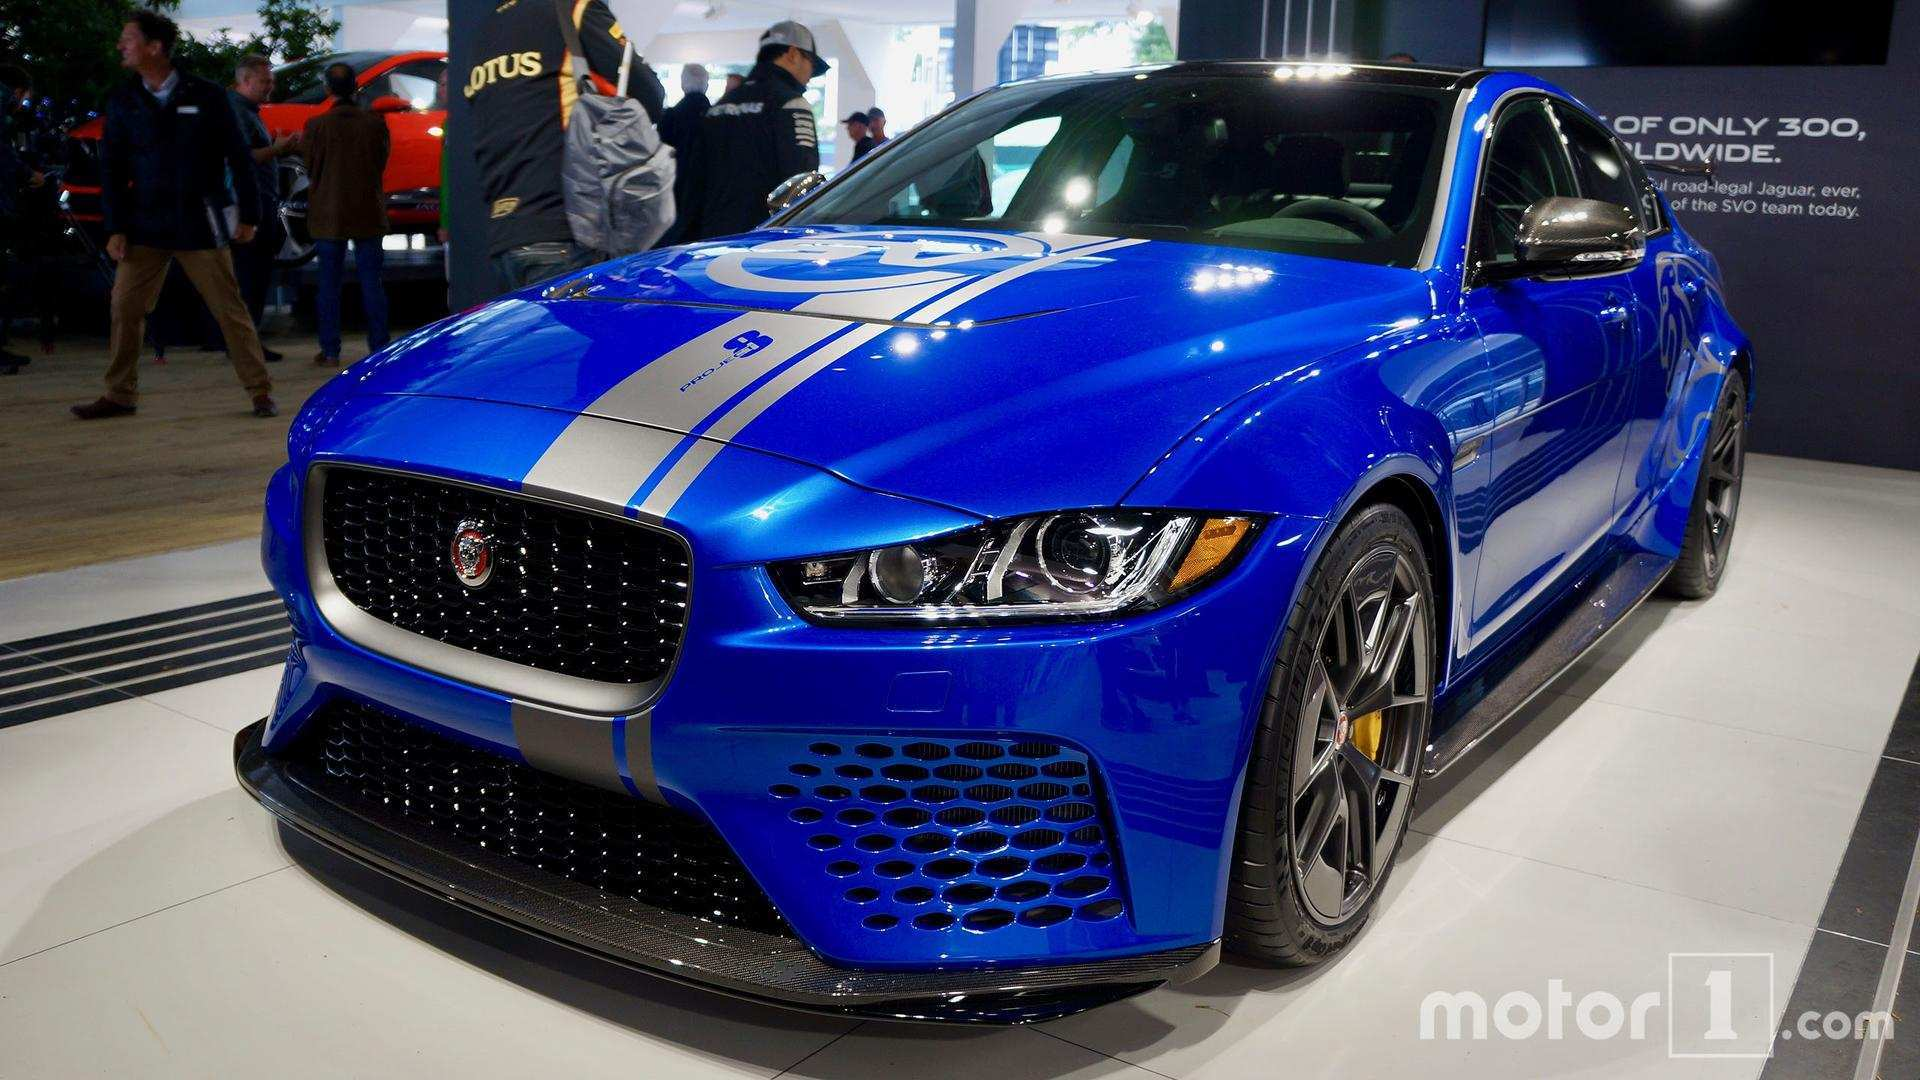 83 The Best 2019 Jaguar Project 8 Performance